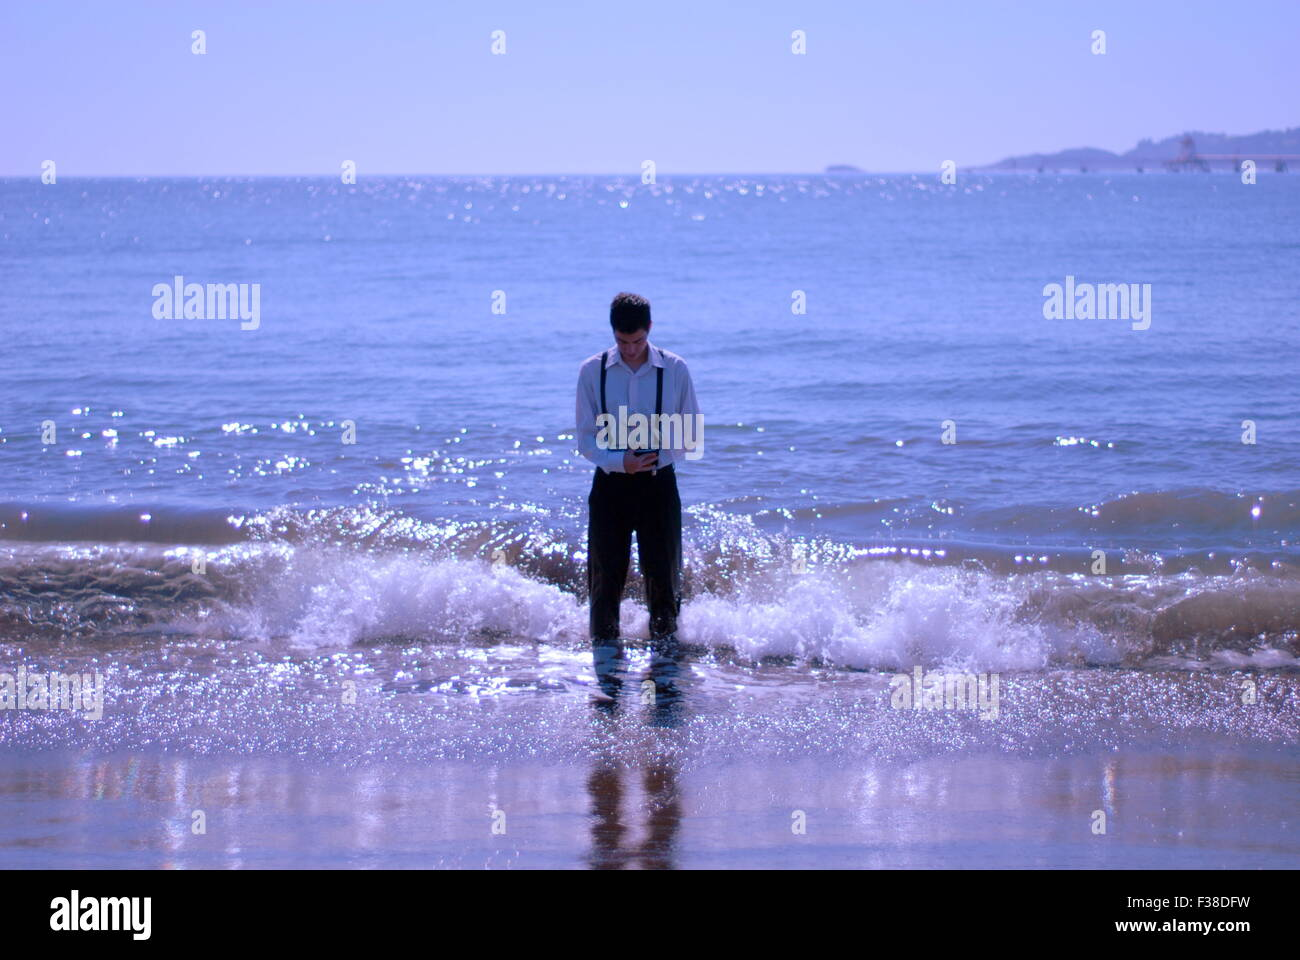 man standing in the water in the ocean waves holding a little boat Stock Photo